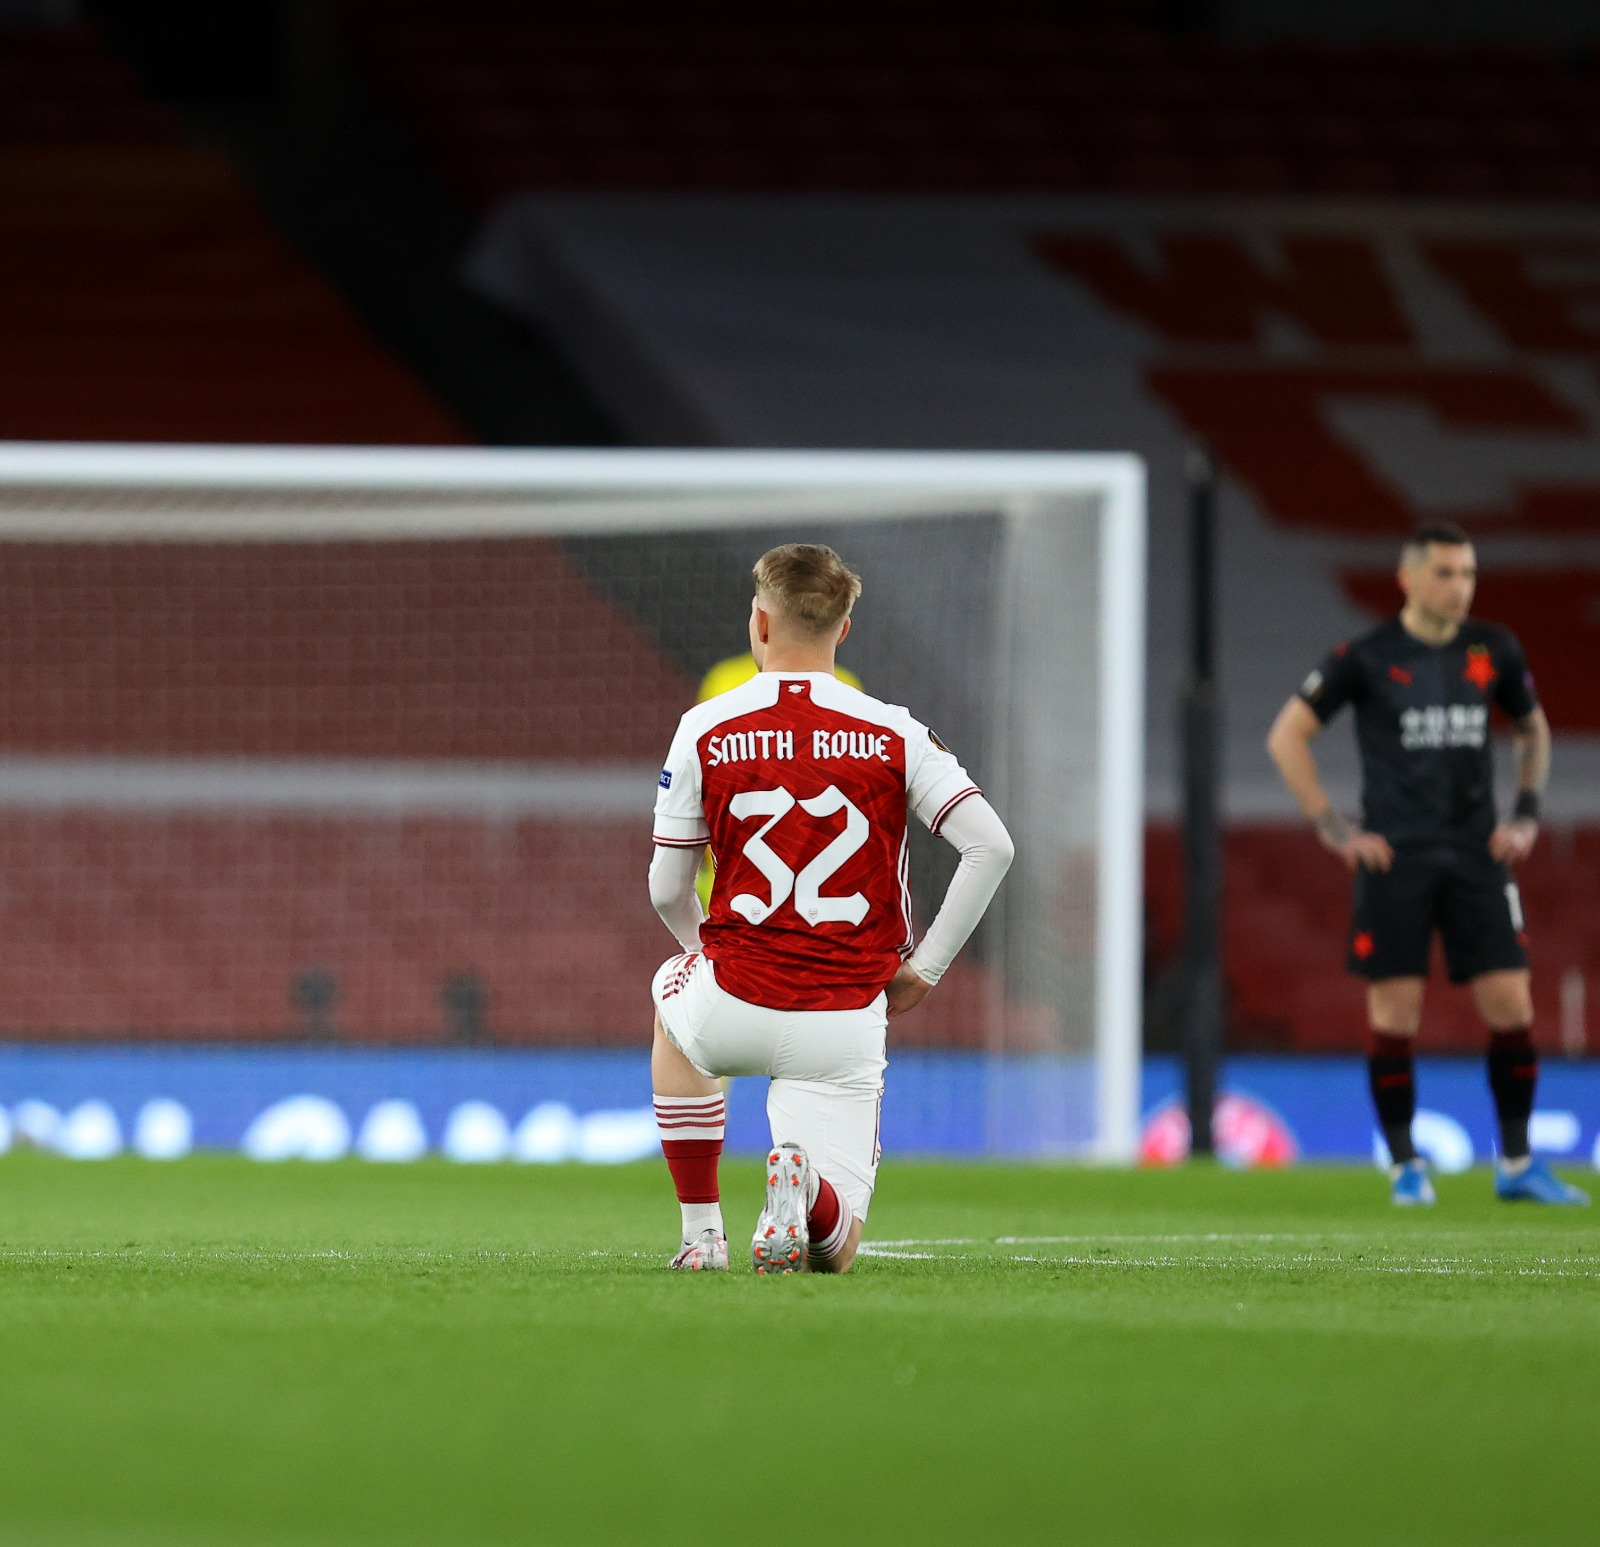 Emile Smith Rowe takes the knee ahead of kick-off